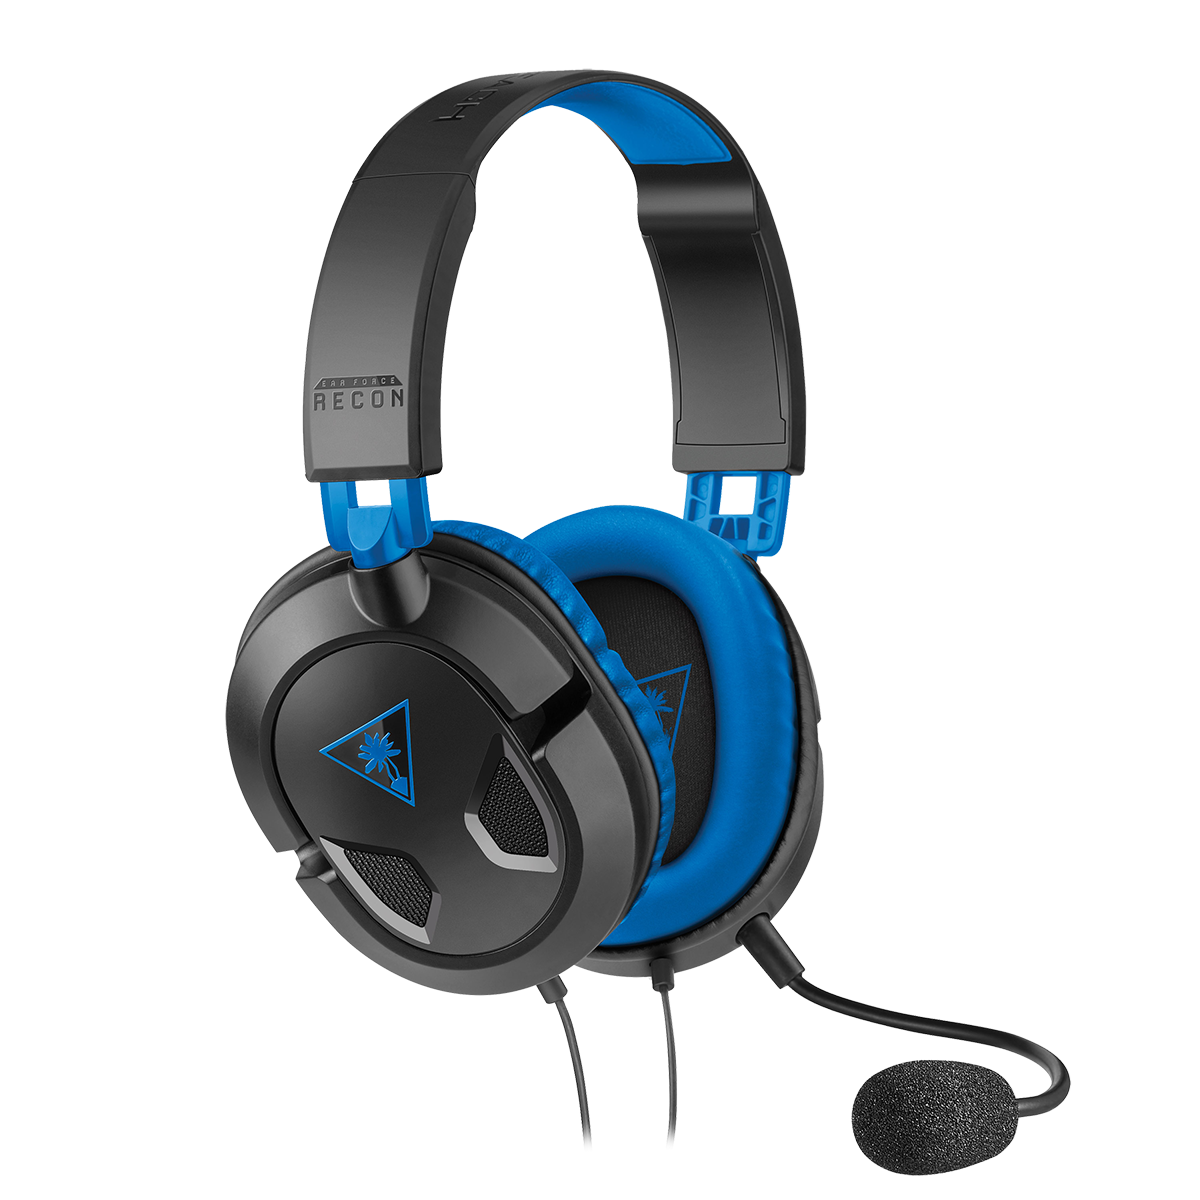 Recon 60P Refurbished Headset